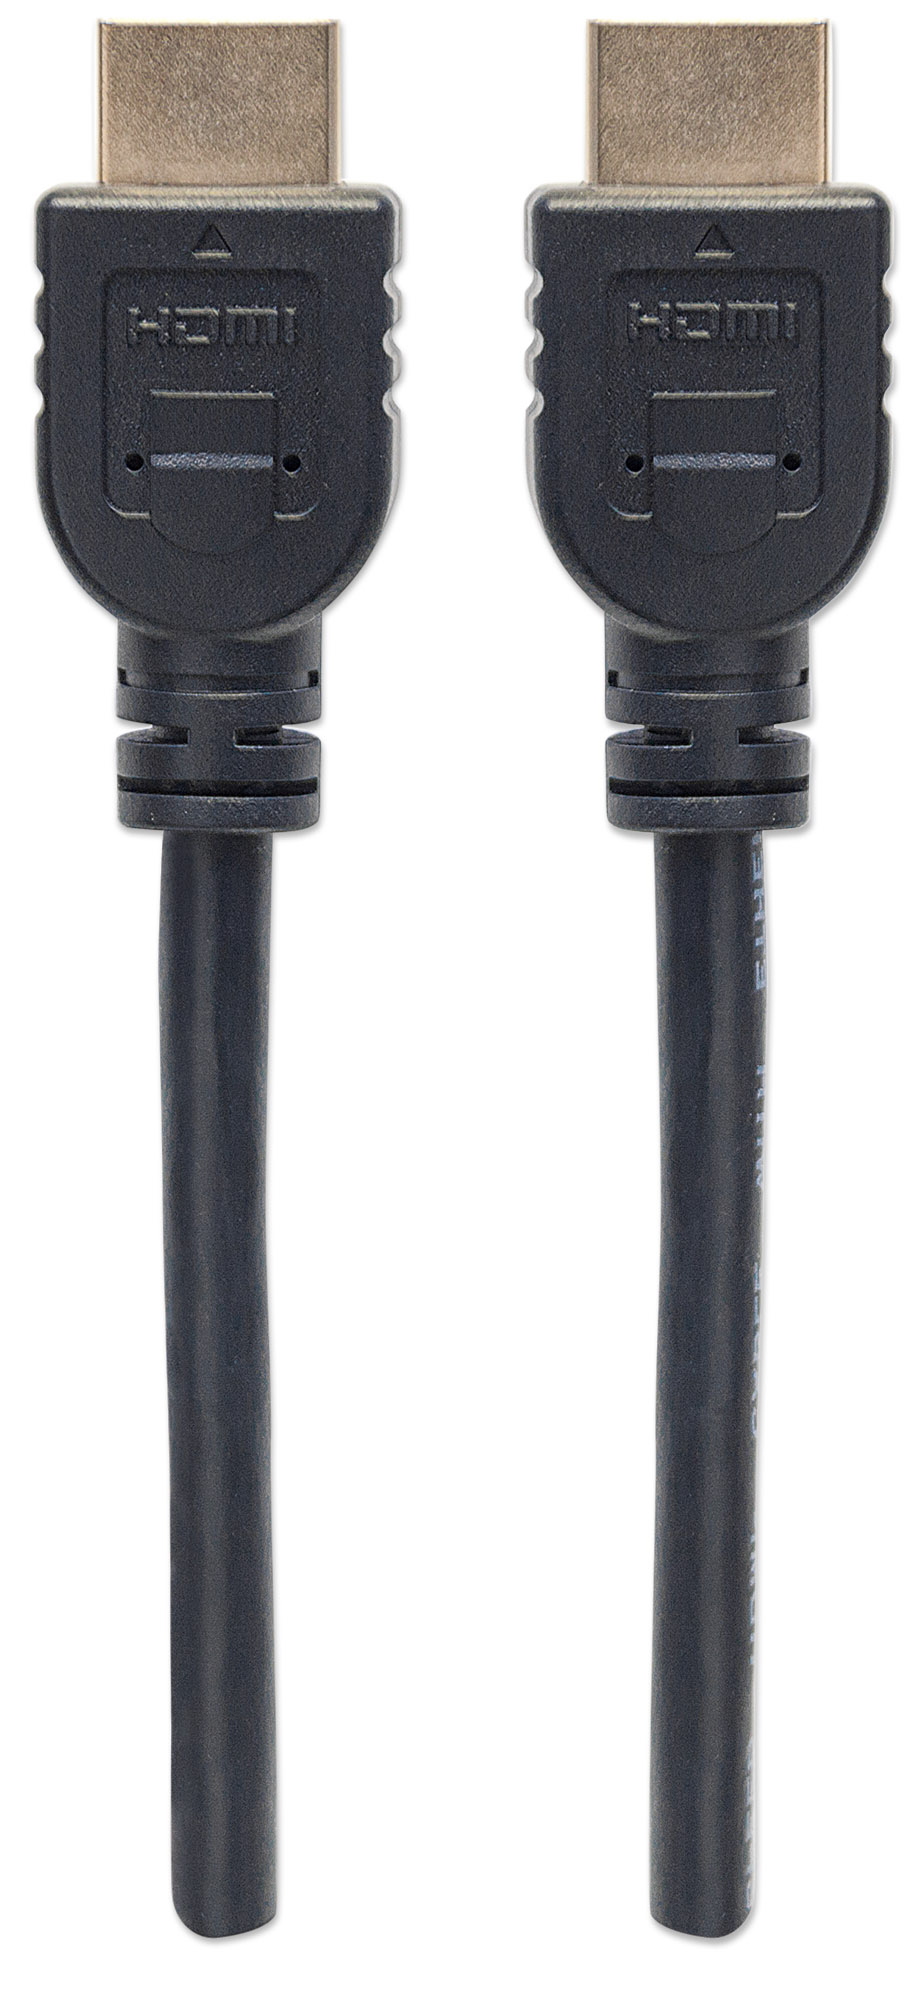 In-wall CL3 High Speed HDMI Cable with Ethernet